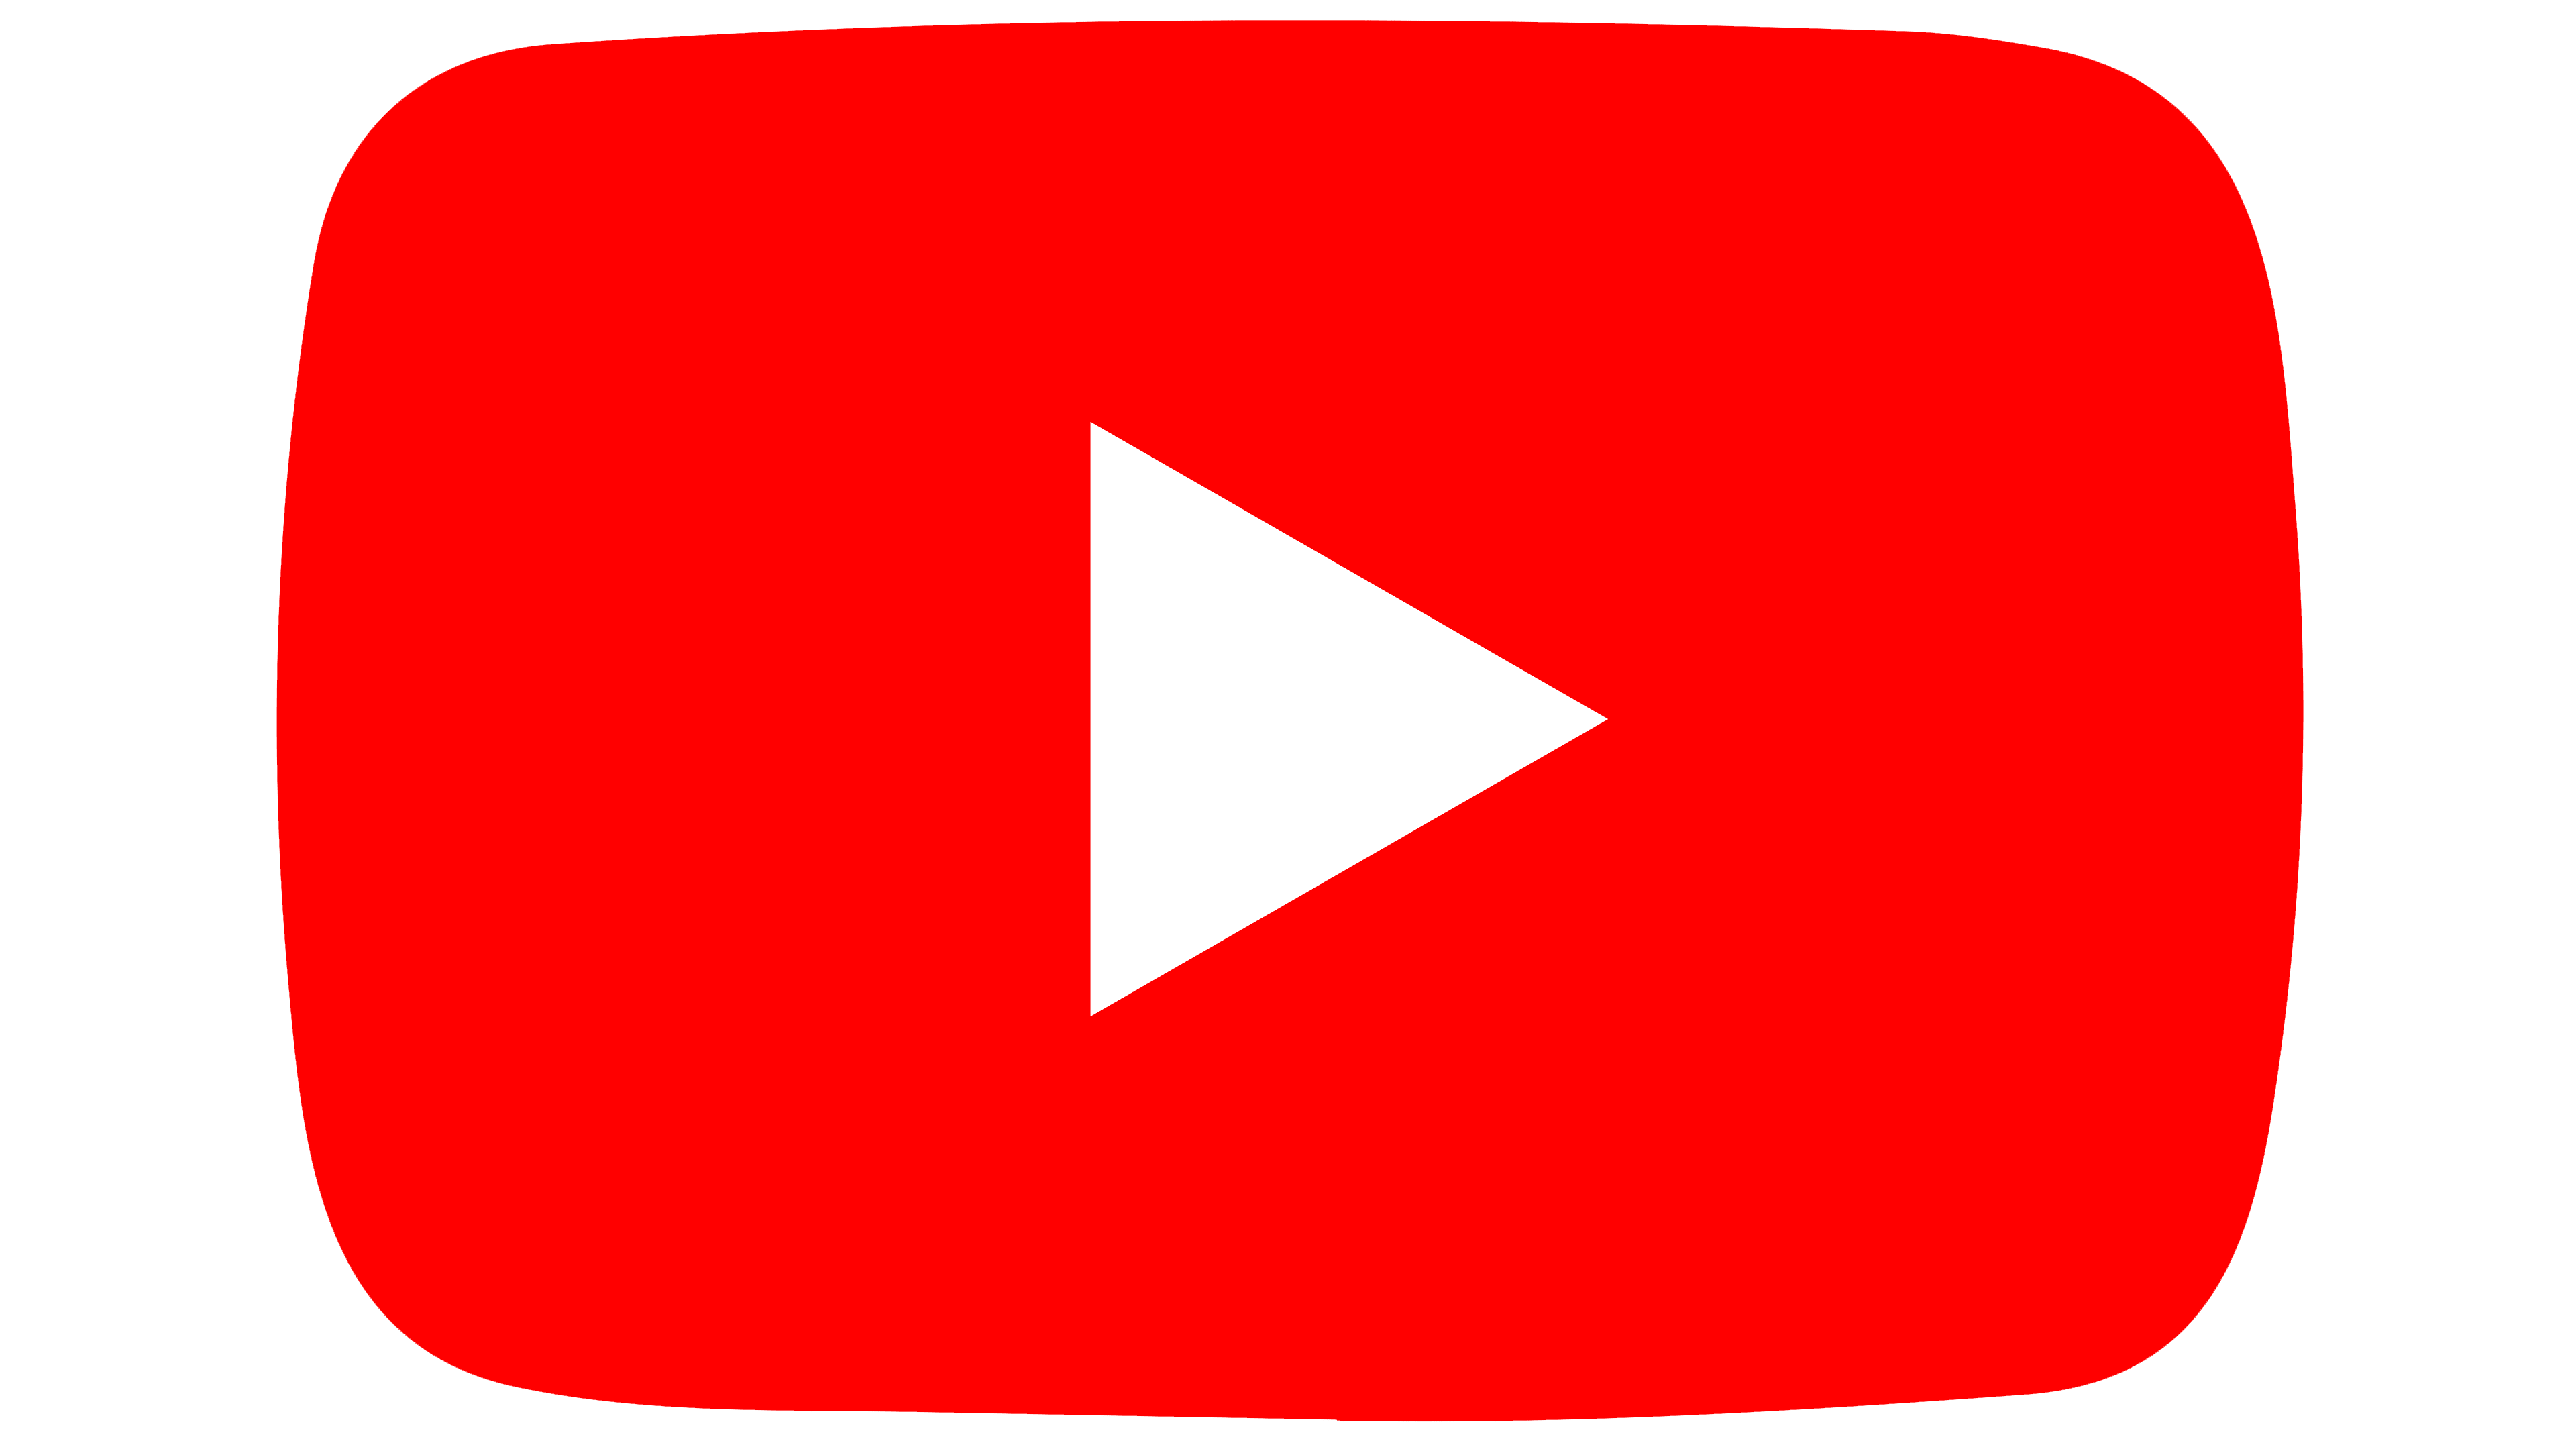 Youtube-annoncering